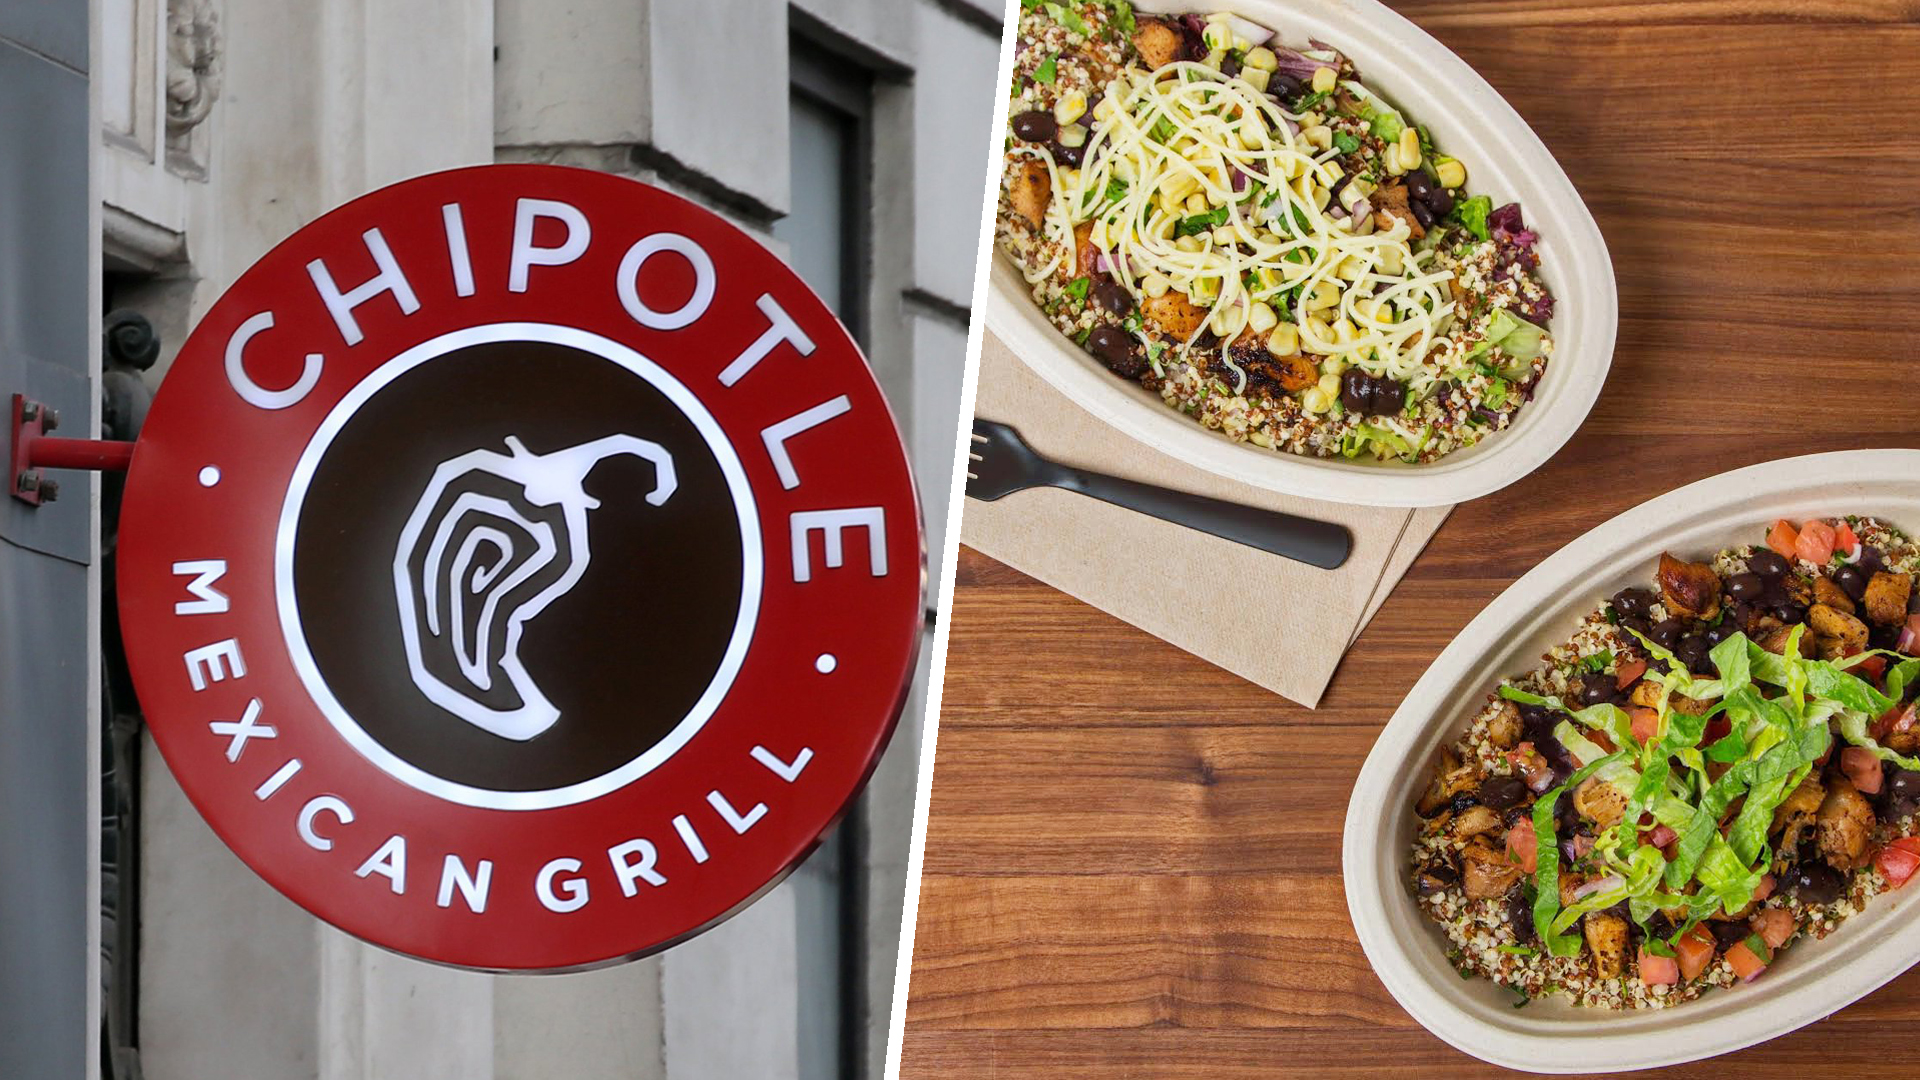 Chipotle Test Kitchen Menu